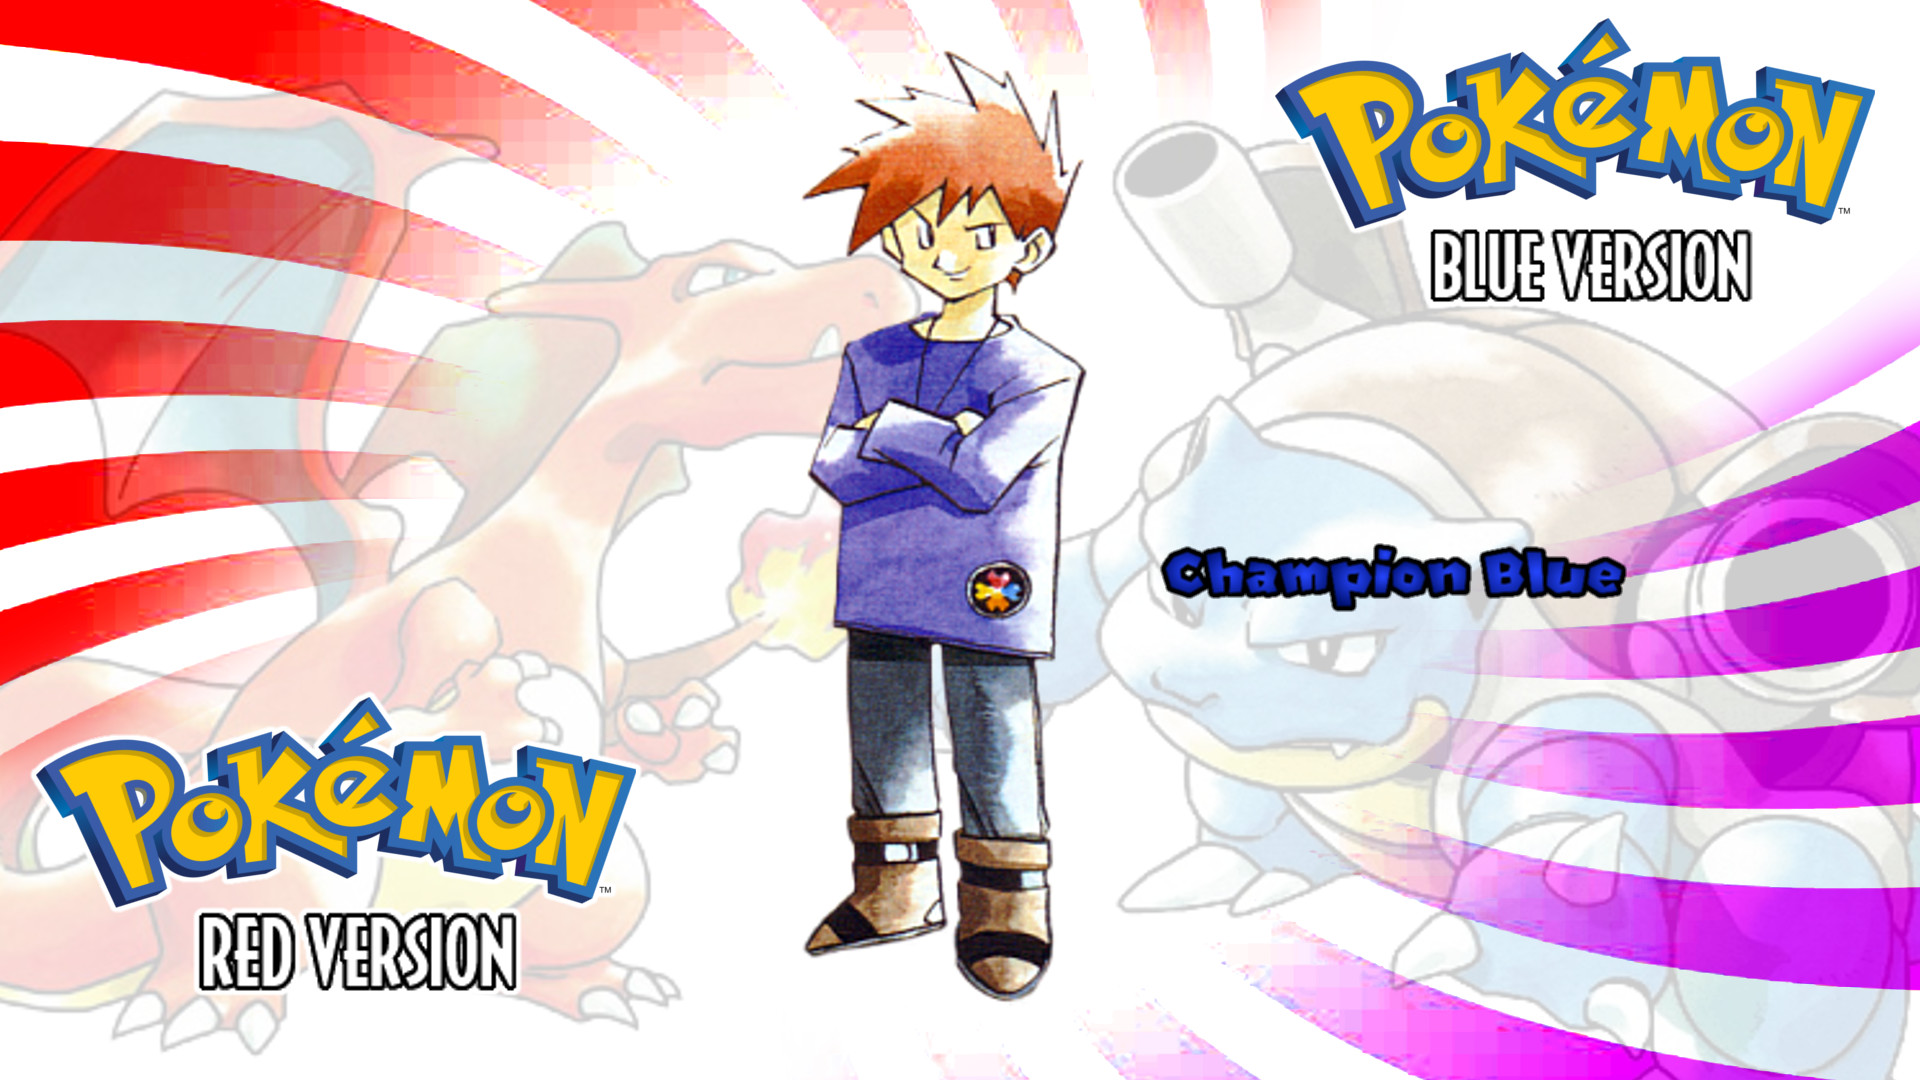 Pokemon Red Wallpapers Hd Wallpaper Collections 4kwallpaper Wiki